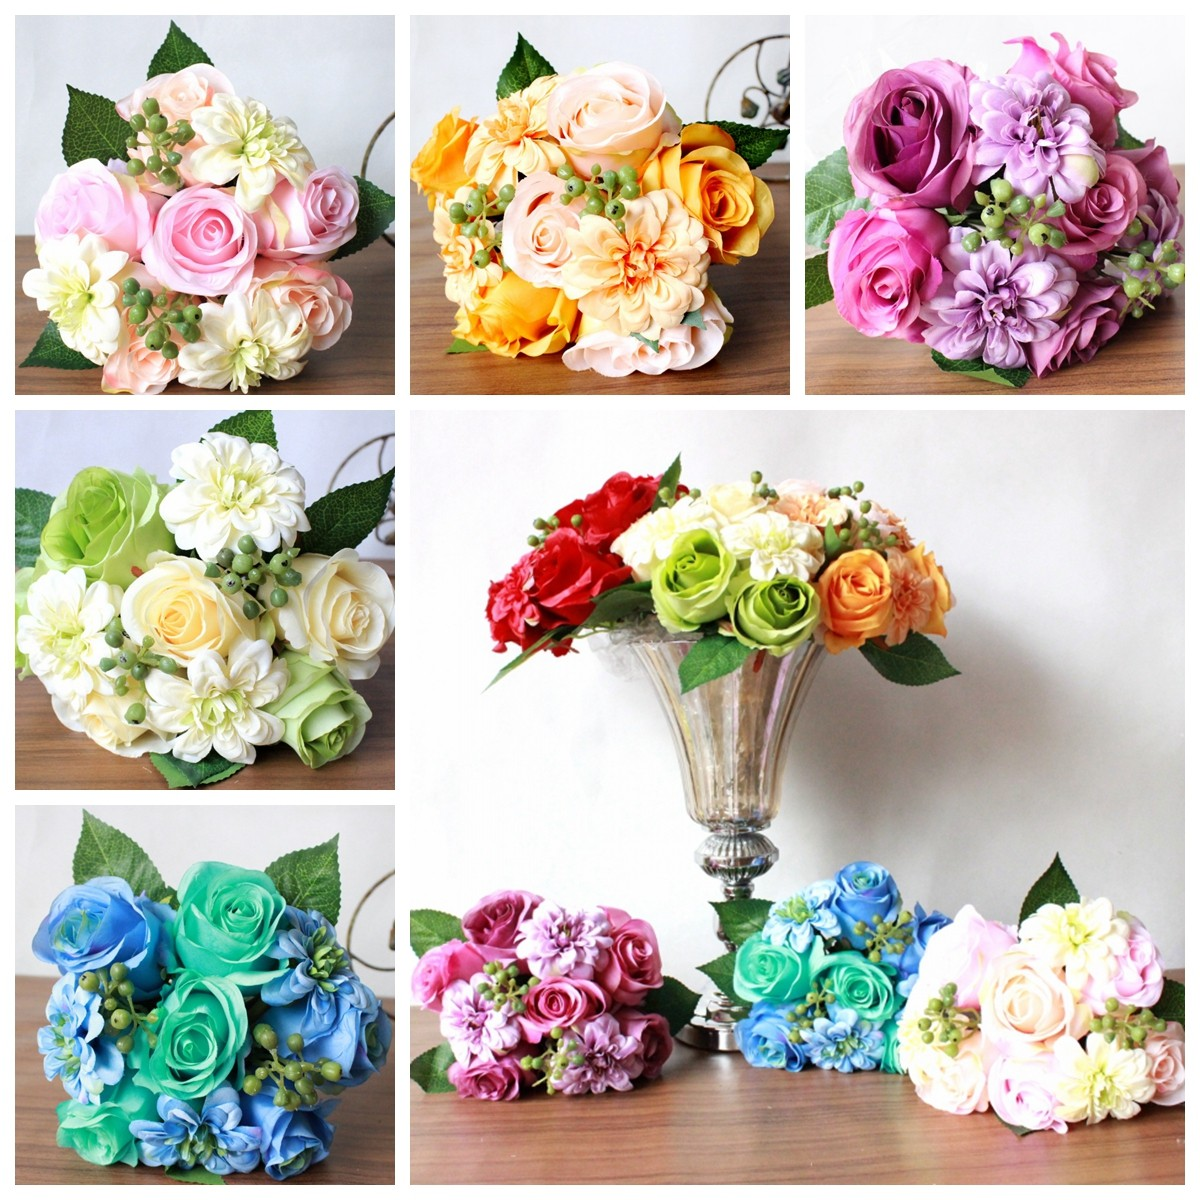 1 Bouquet 9 Heads Artificial Silk Roses Flowers Bouquet Home Wedding Bridal Party Decor